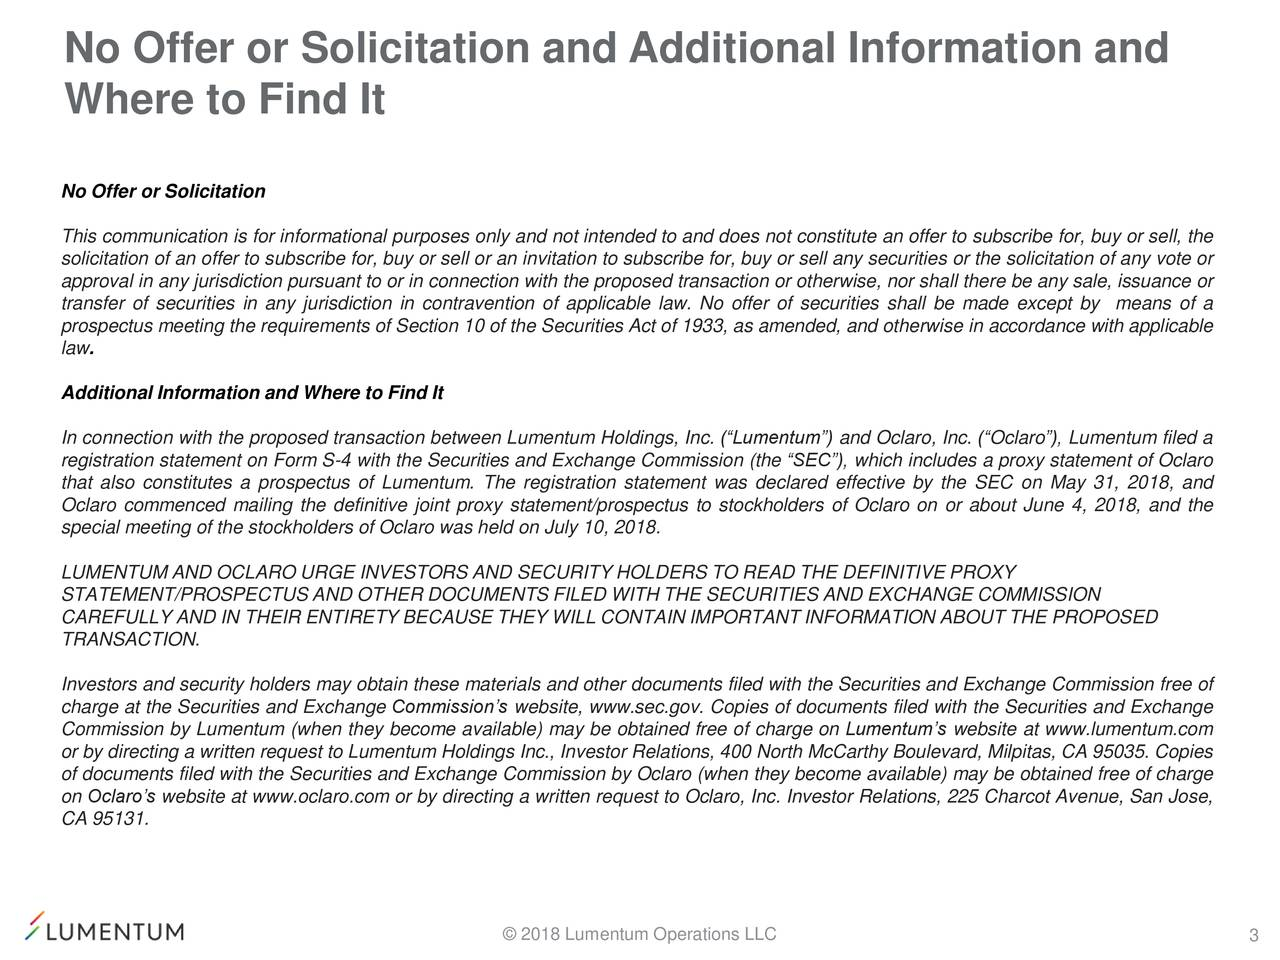 """Where to Find It No Offer or Solicitation This communication is for informational purposes only and not intended to and does not constitute an offer to subscribe for, buy or sell, the solicitation of an offer to subscribe for, buy or sell or an invitation to subscribe for, buy or sell any securities or the solicitation of any vote or approval in any jurisdiction pursuant to or in connection with the proposed transaction or otherwise, nor shall there be any sale, issuance or transfer of securities in any jurisdiction in contravention of applicable law. No offer of securities shall be made except by means of a prospectus meeting the requirements of Section 10 of the Securities Act of 1933, as amended, and otherwise in accordance with applicable law. Additional Information and Where to Find It In connection with the proposed transaction between Lumentum Holdings, Inc. (""""Lumentum"""") and Oclaro, Inc. (""""Oclaro""""), Lumentum filed a registration statement on Form S-4 with the Securities and Exchange Commission (the """"SEC""""), which includes a proxy statement of Oclaro that also constitutes a prospectus of Lumentum. The registration statement was declared effective by the SEC on May 31, 2018, and Oclaro commenced mailing the definitive joint proxy statement/prospectus to stockholders of Oclaro on or about June 4, 2018, and the special meeting of the stockholders of Oclaro was held on July 10, 2018. LUMENTUM AND OCLARO URGE INVESTORS AND SECURITY HOLDERS TO READ THE DEFINITIVE PROXY STATEMENT/PROSPECTUS AND OTHER DOCUMENTS FILED WITH THE SECURITIES AND EXCHANGE COMMISSION CAREFULLY AND IN THEIR ENTIRETY BECAUSE THEY WILL CONTAIN IMPORTANT INFORMATION ABOUT THE PROPOSED TRANSACTION. Investors and security holders may obtain these materials and other documents filed with the Securities and Exchange Commission free of charge at the Securities and Exchange Commission's website, www.sec.gov. Copies of documents filed with the Securities and Exchange Commission by Lumentum (when they be"""